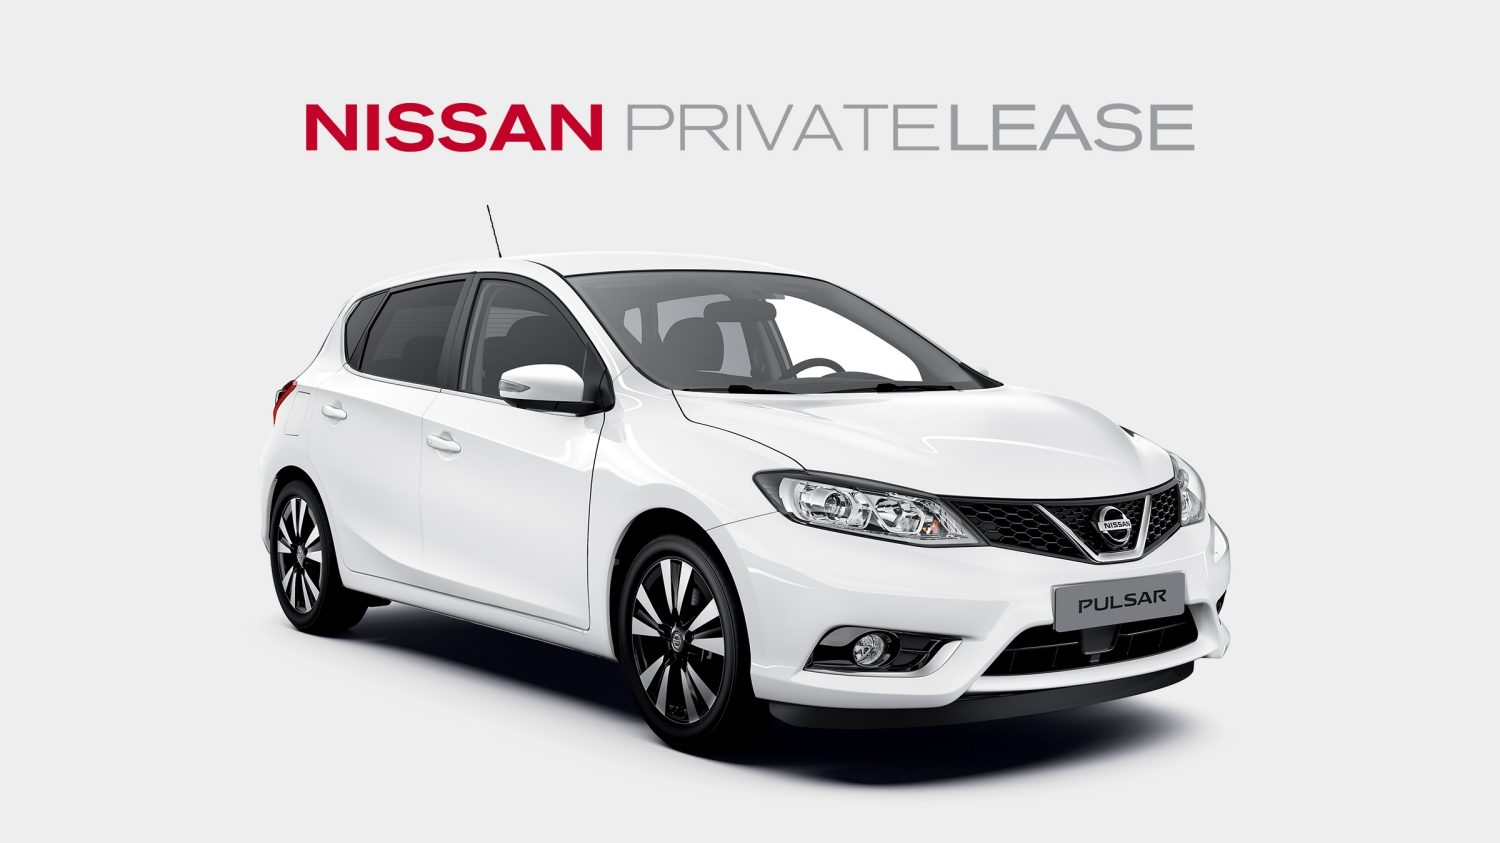 Nissan Qashqai Private Lease Nissan Private Lease Promoties Eigenaar Nissan